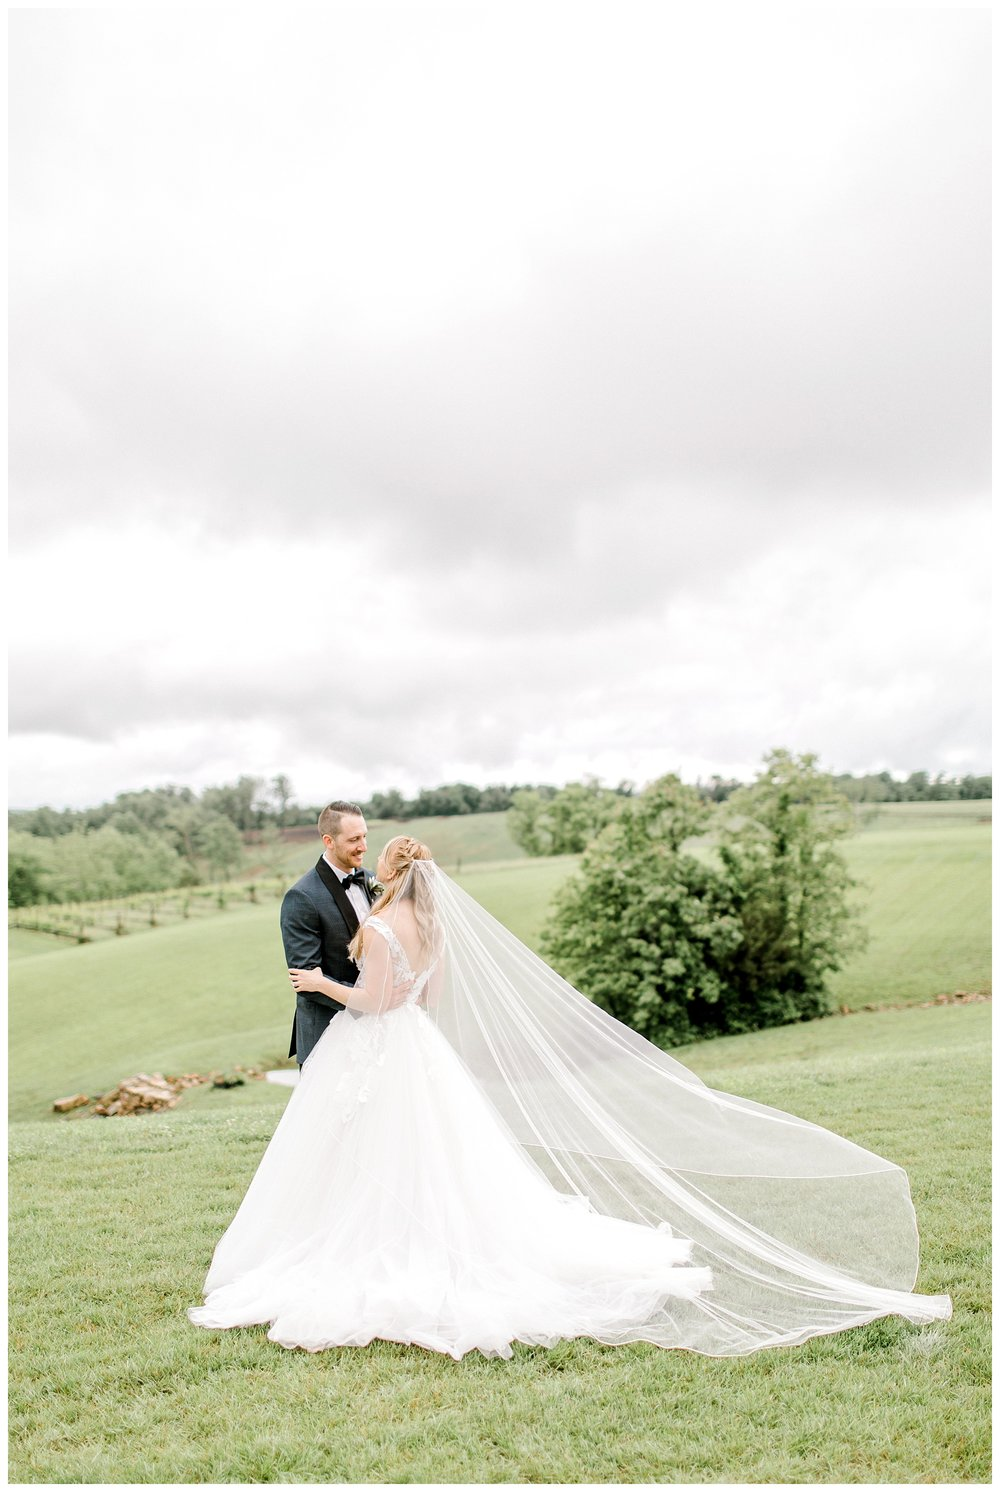 Stone Tower Winery Wedding Virginia Wedding Photographer Kir Tuben_0069.jpg